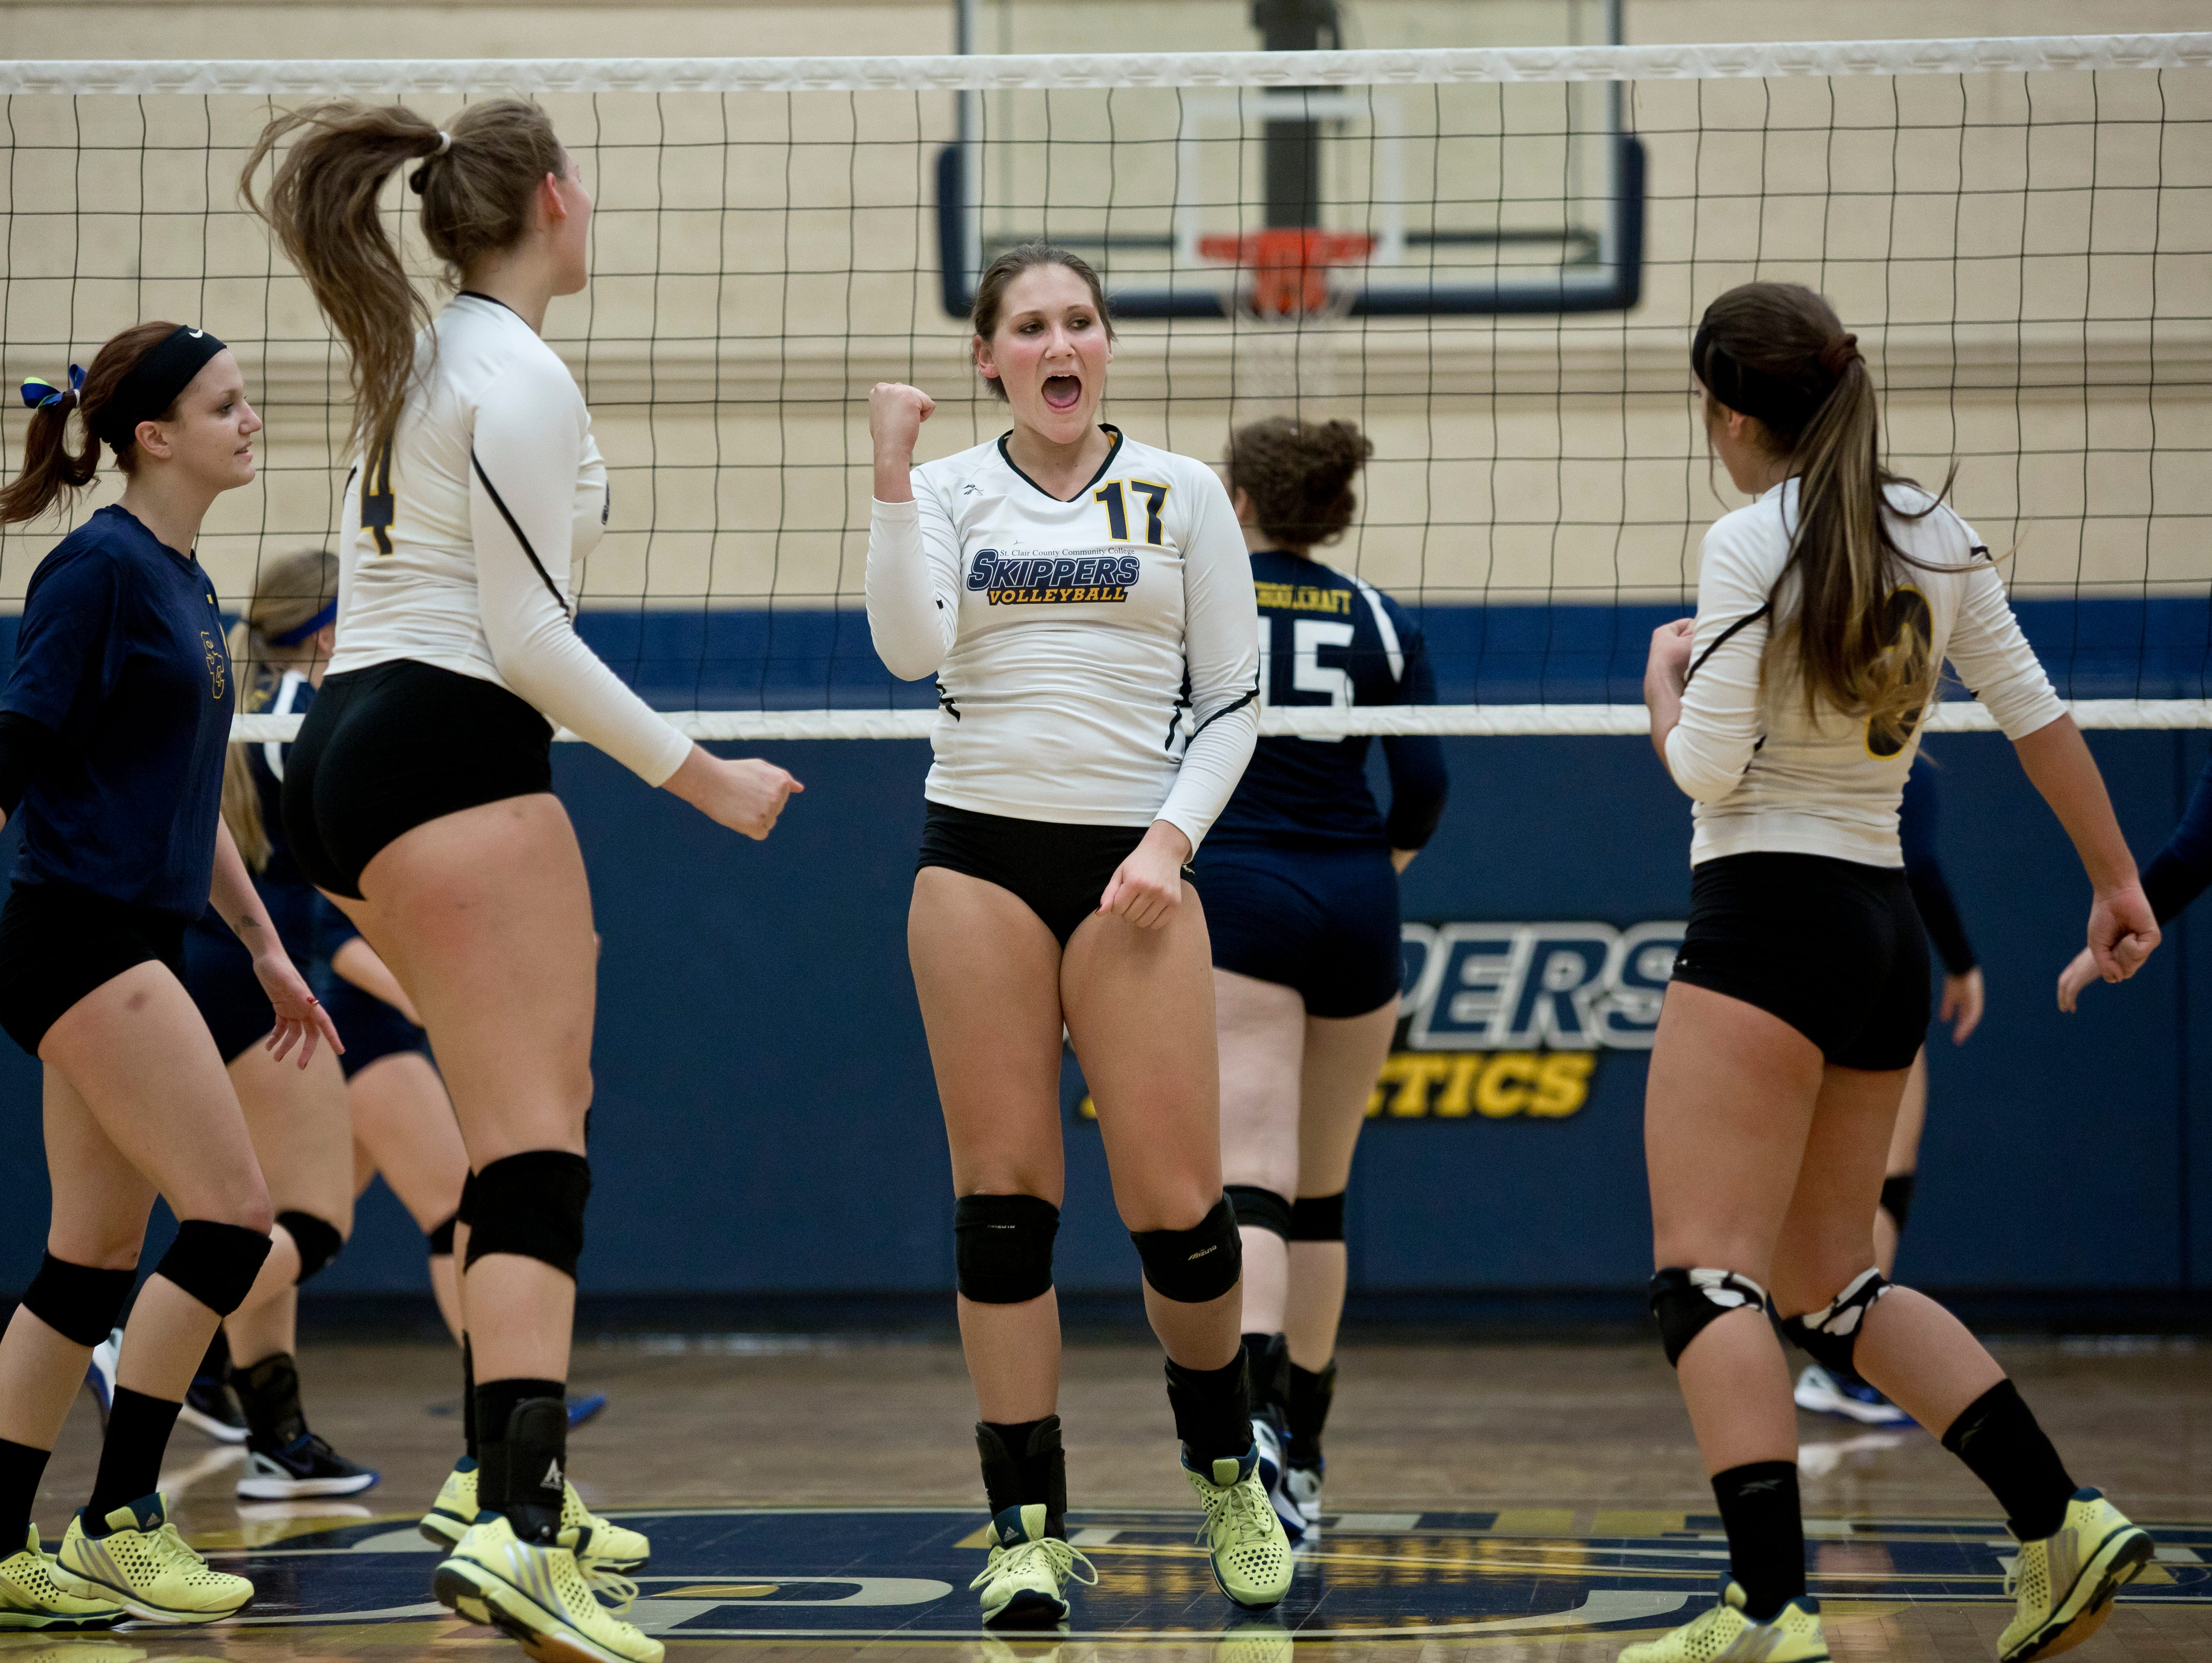 SC4's Briann Alspaugh celebrates with teammates during a volleyball game Tuesday, October 21, 2015 at the St. Clair County Community College gymnasium.